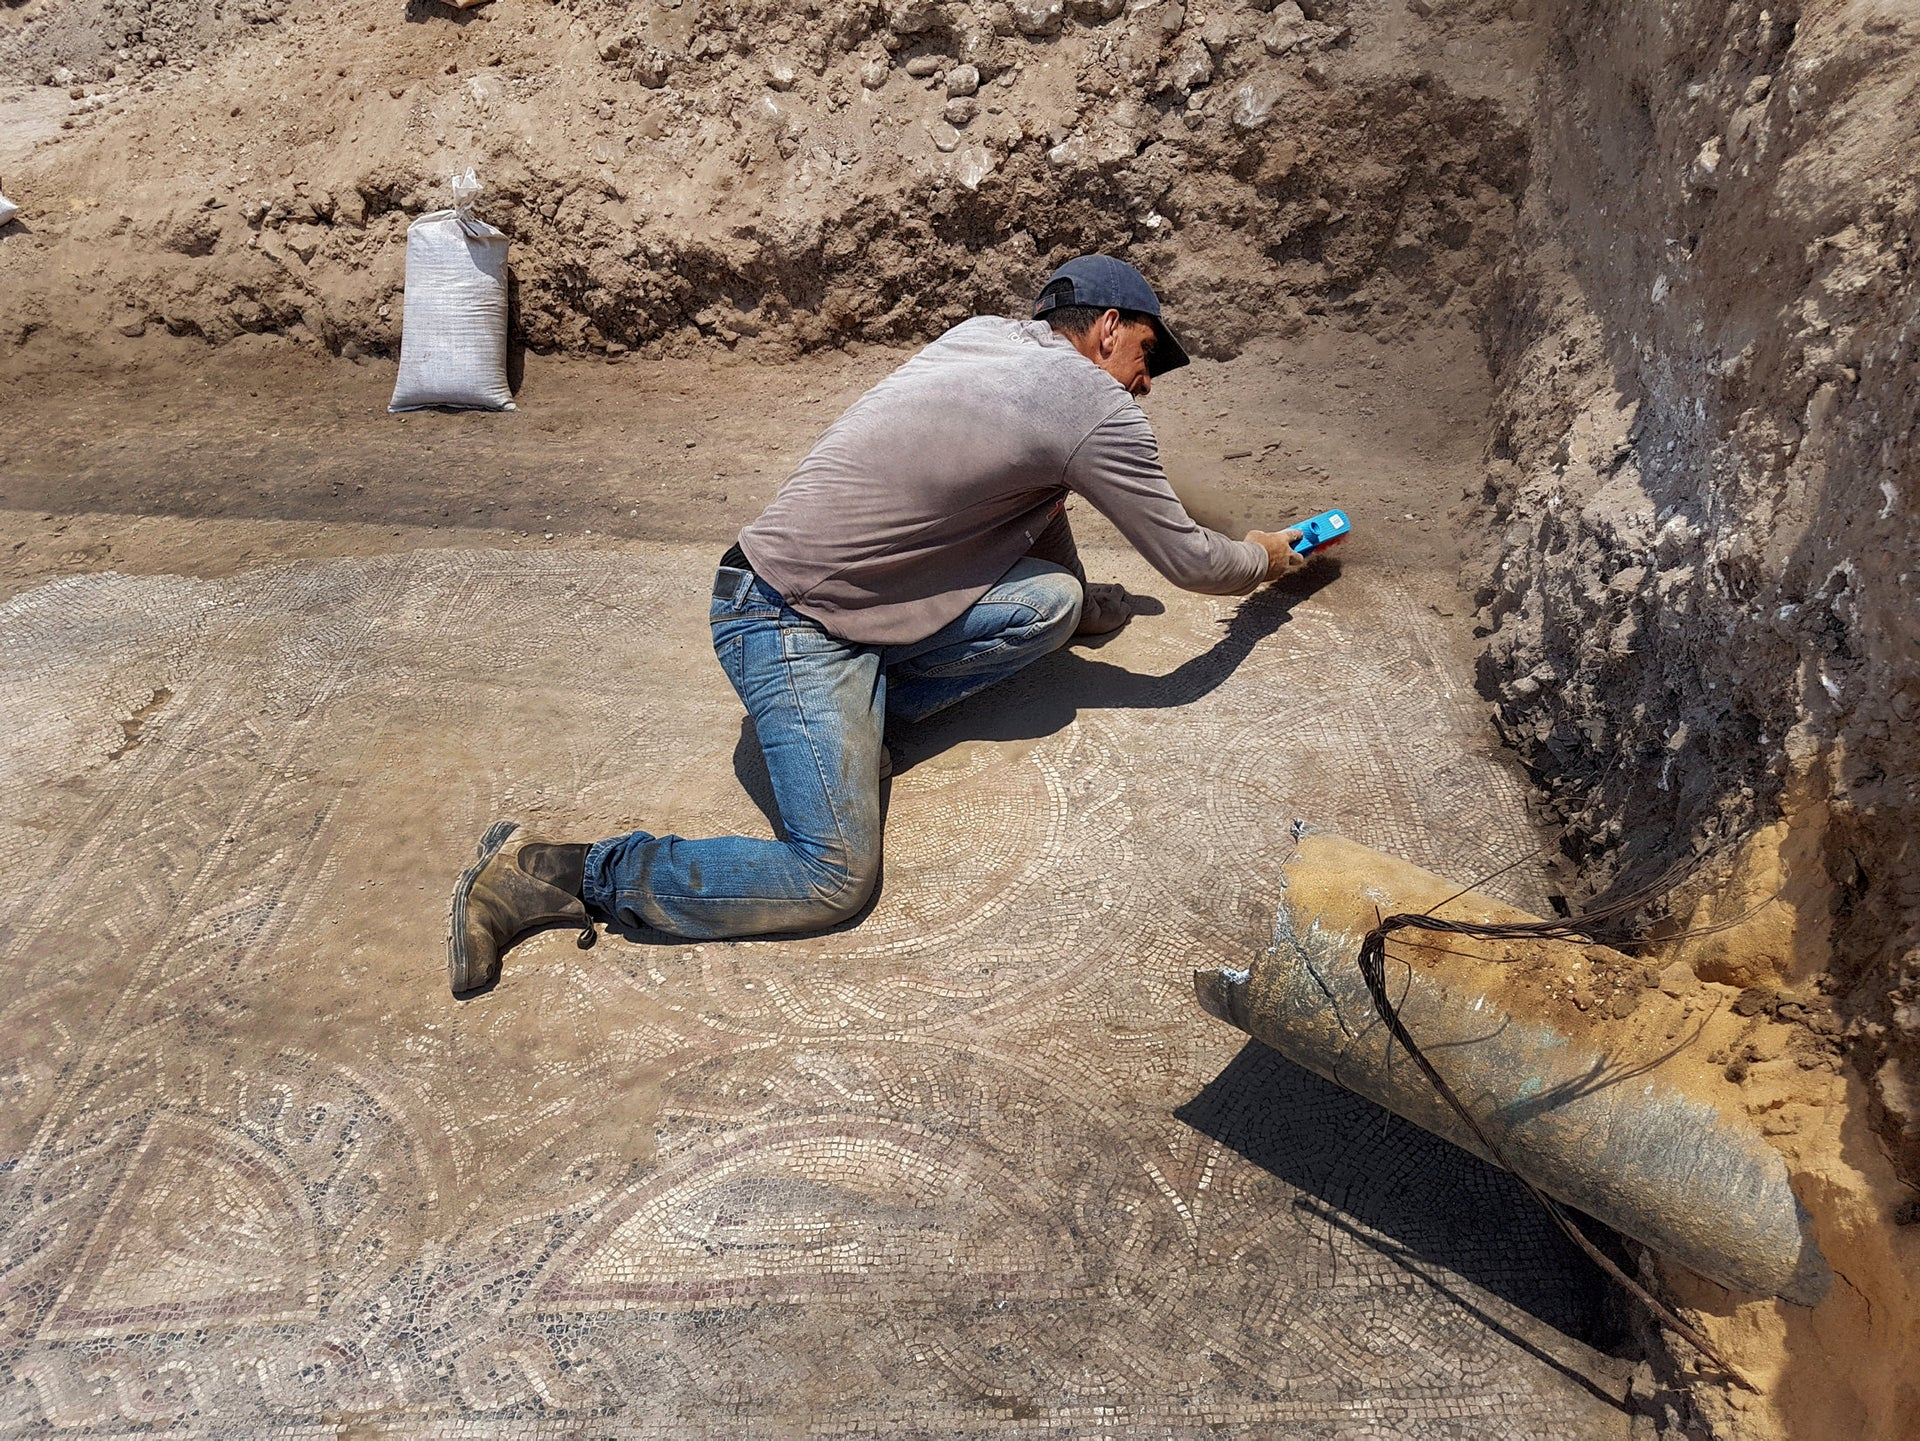 Painstakingly cleaning off the mosaic found in 1700-year-old house in Lod